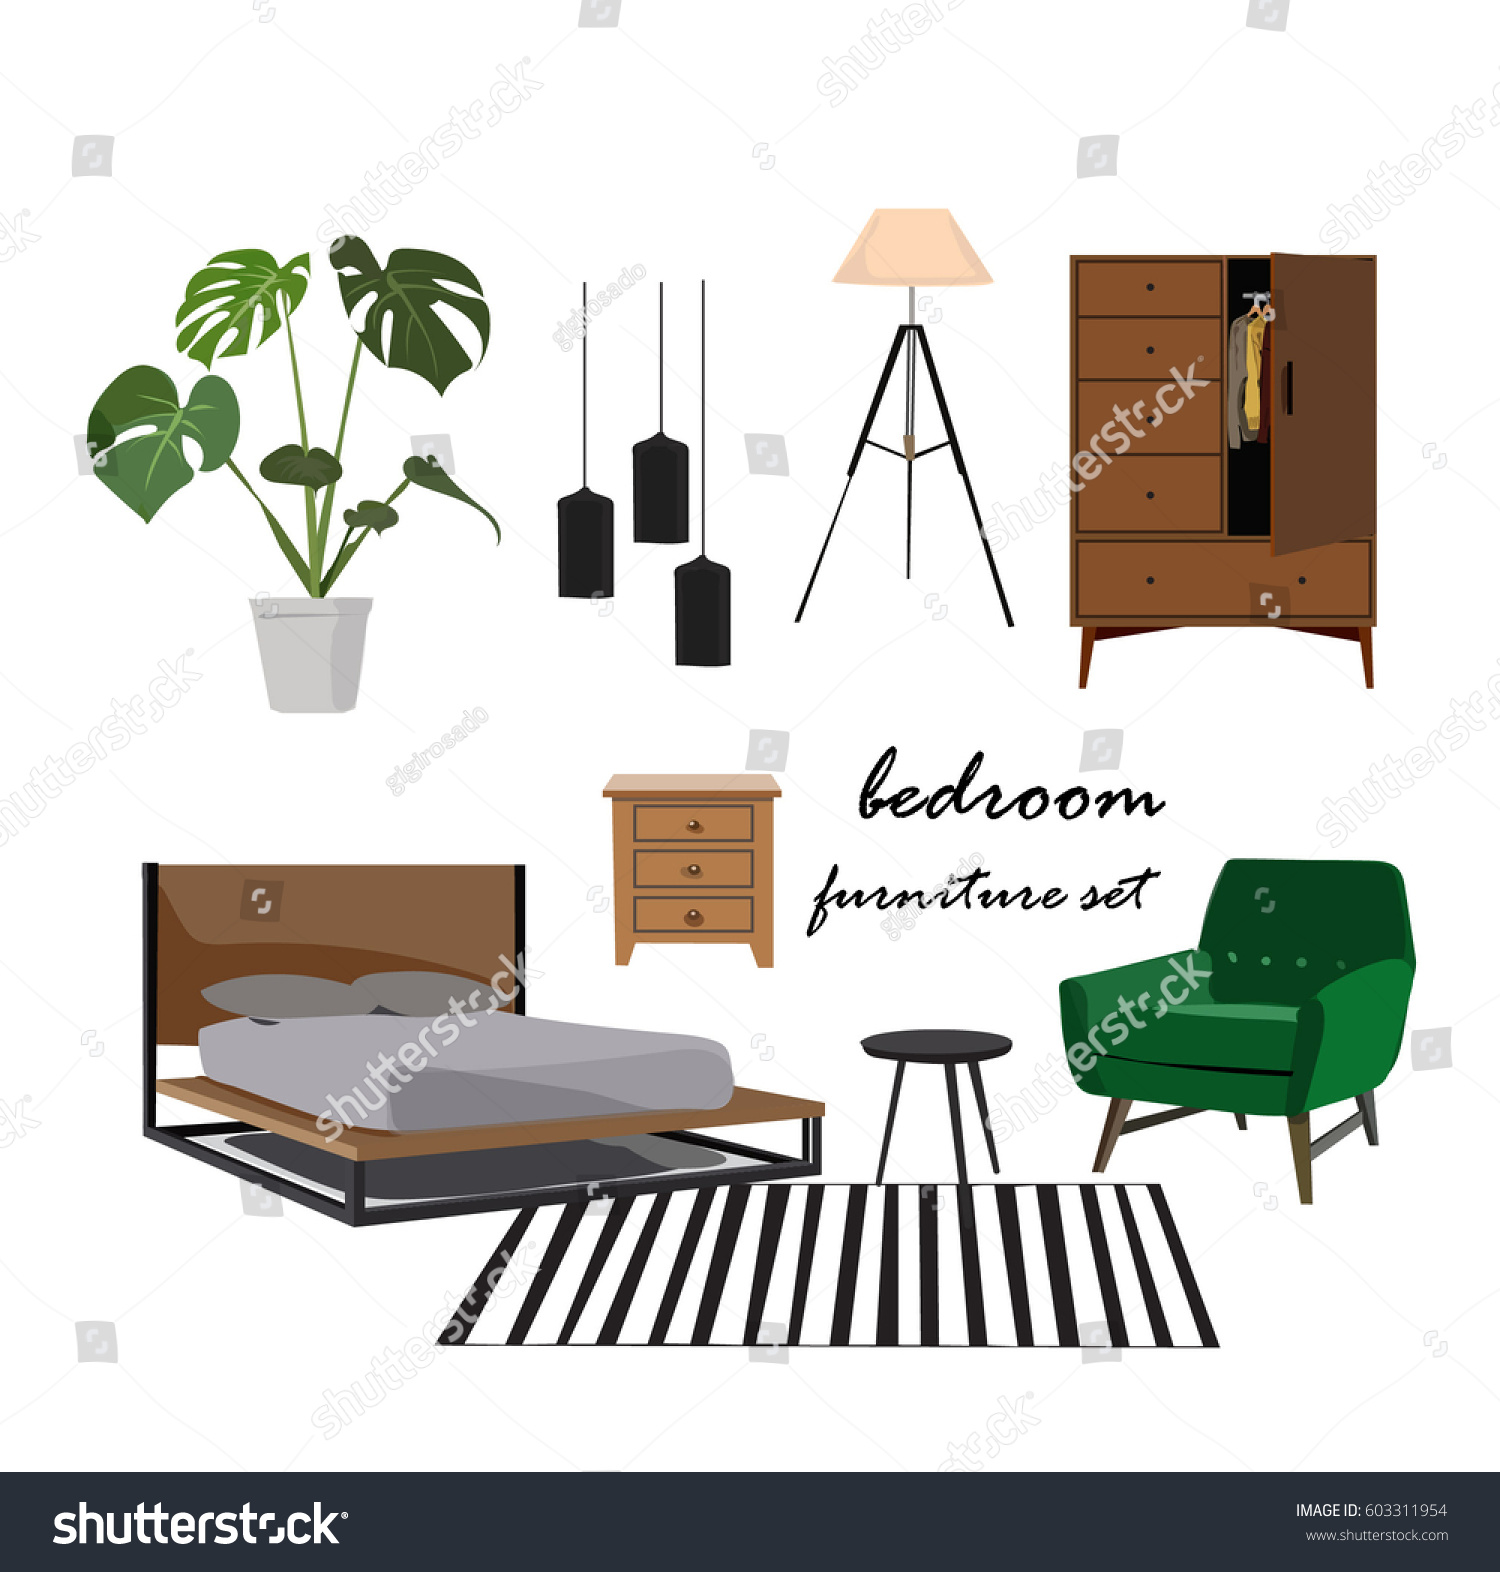 Bedroom furniture set interior design home stock vector for Interior design furniture